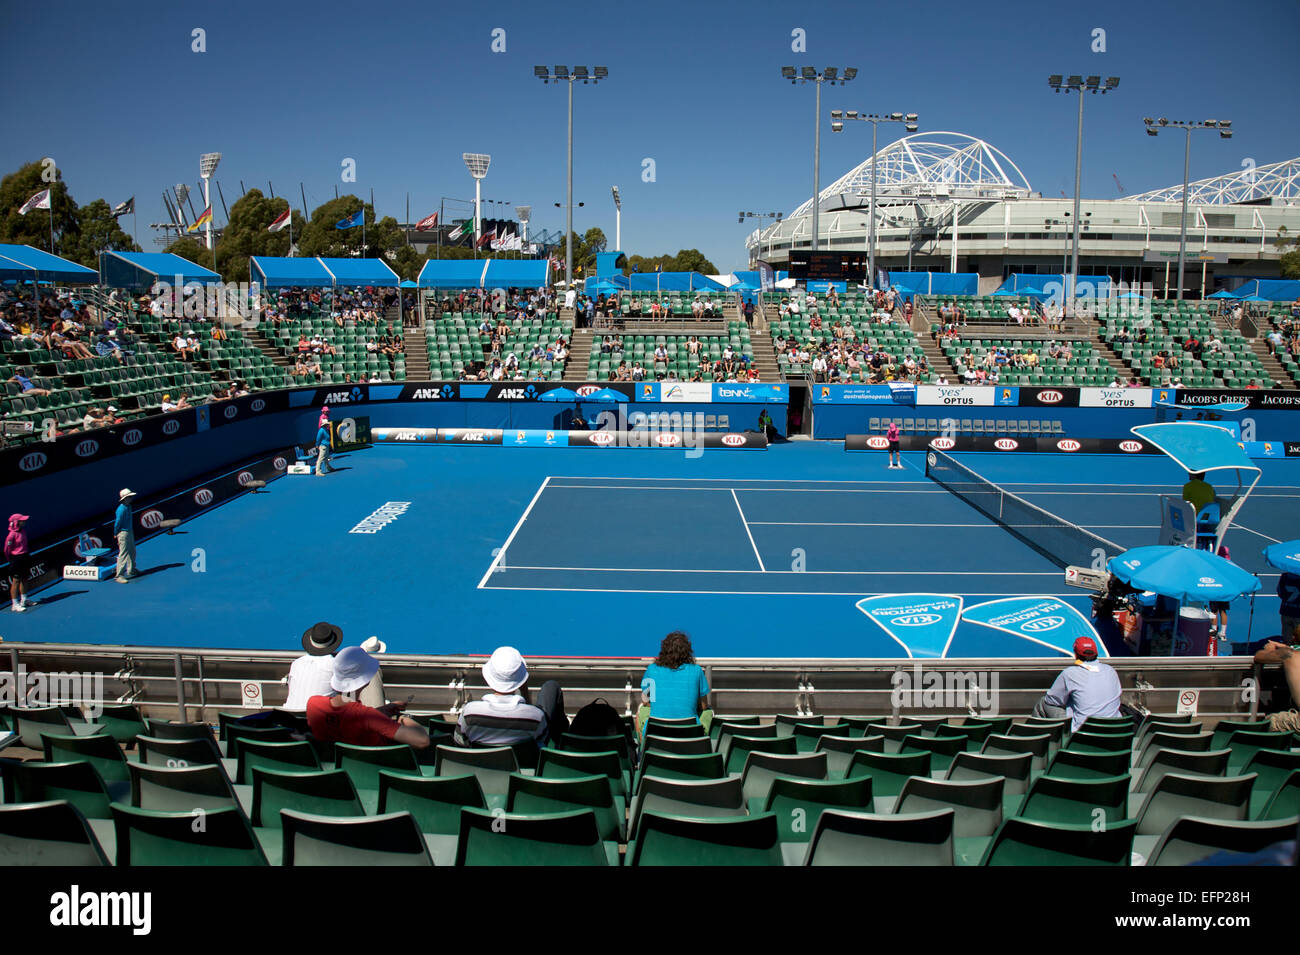 Australian Open Tennis Tournament Rod Court Arena In The Background